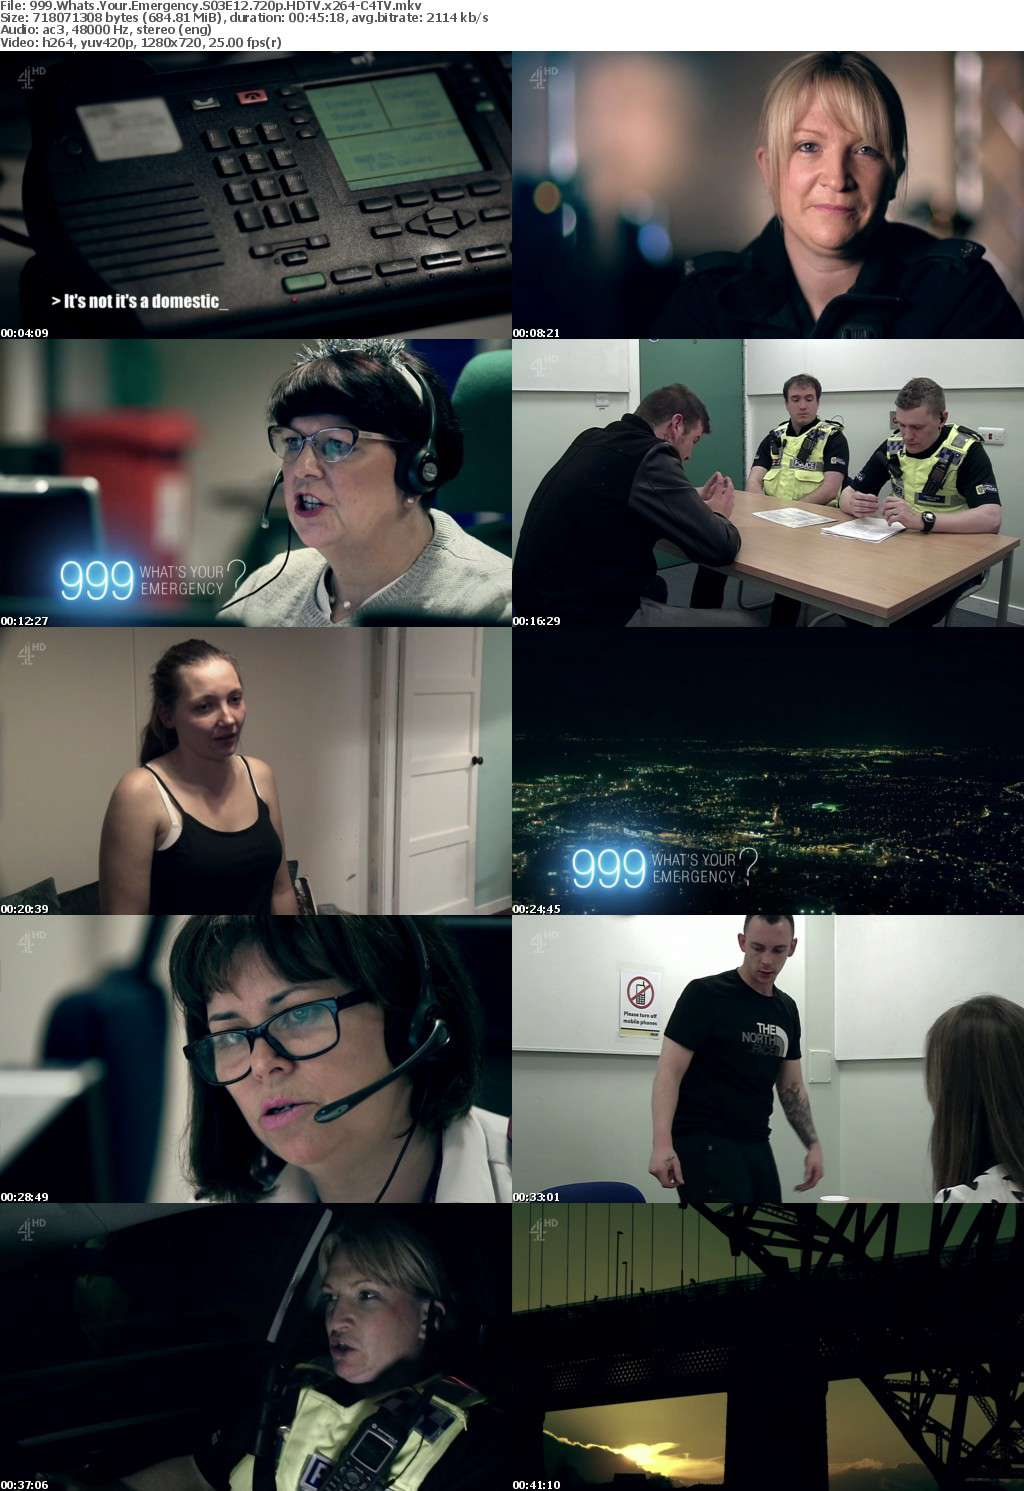 999 Whats Your Emergency S03 720p HDTV x264-Scene